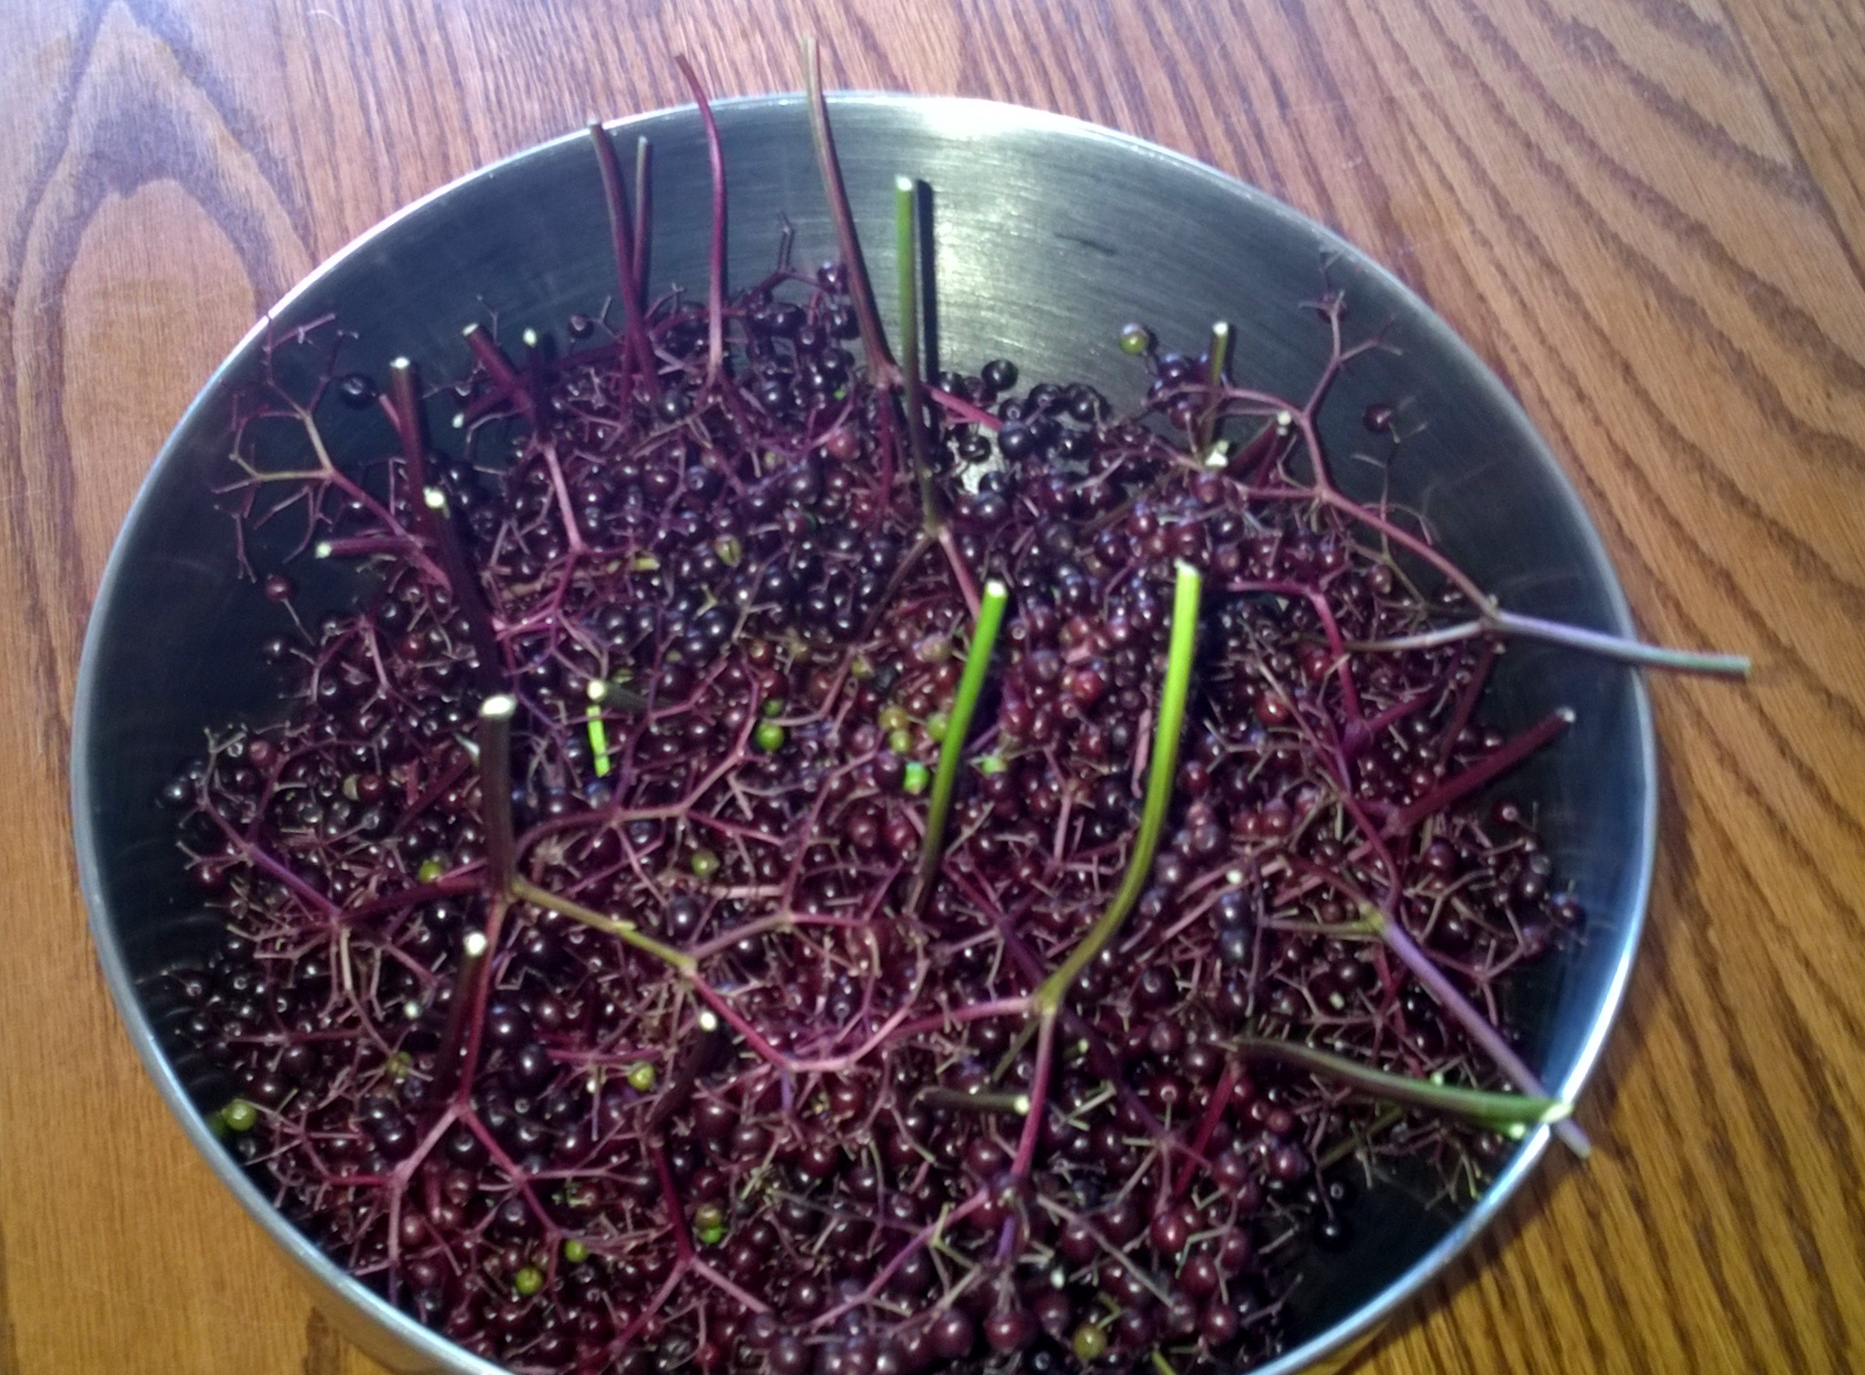 elderberry stems in the bowl